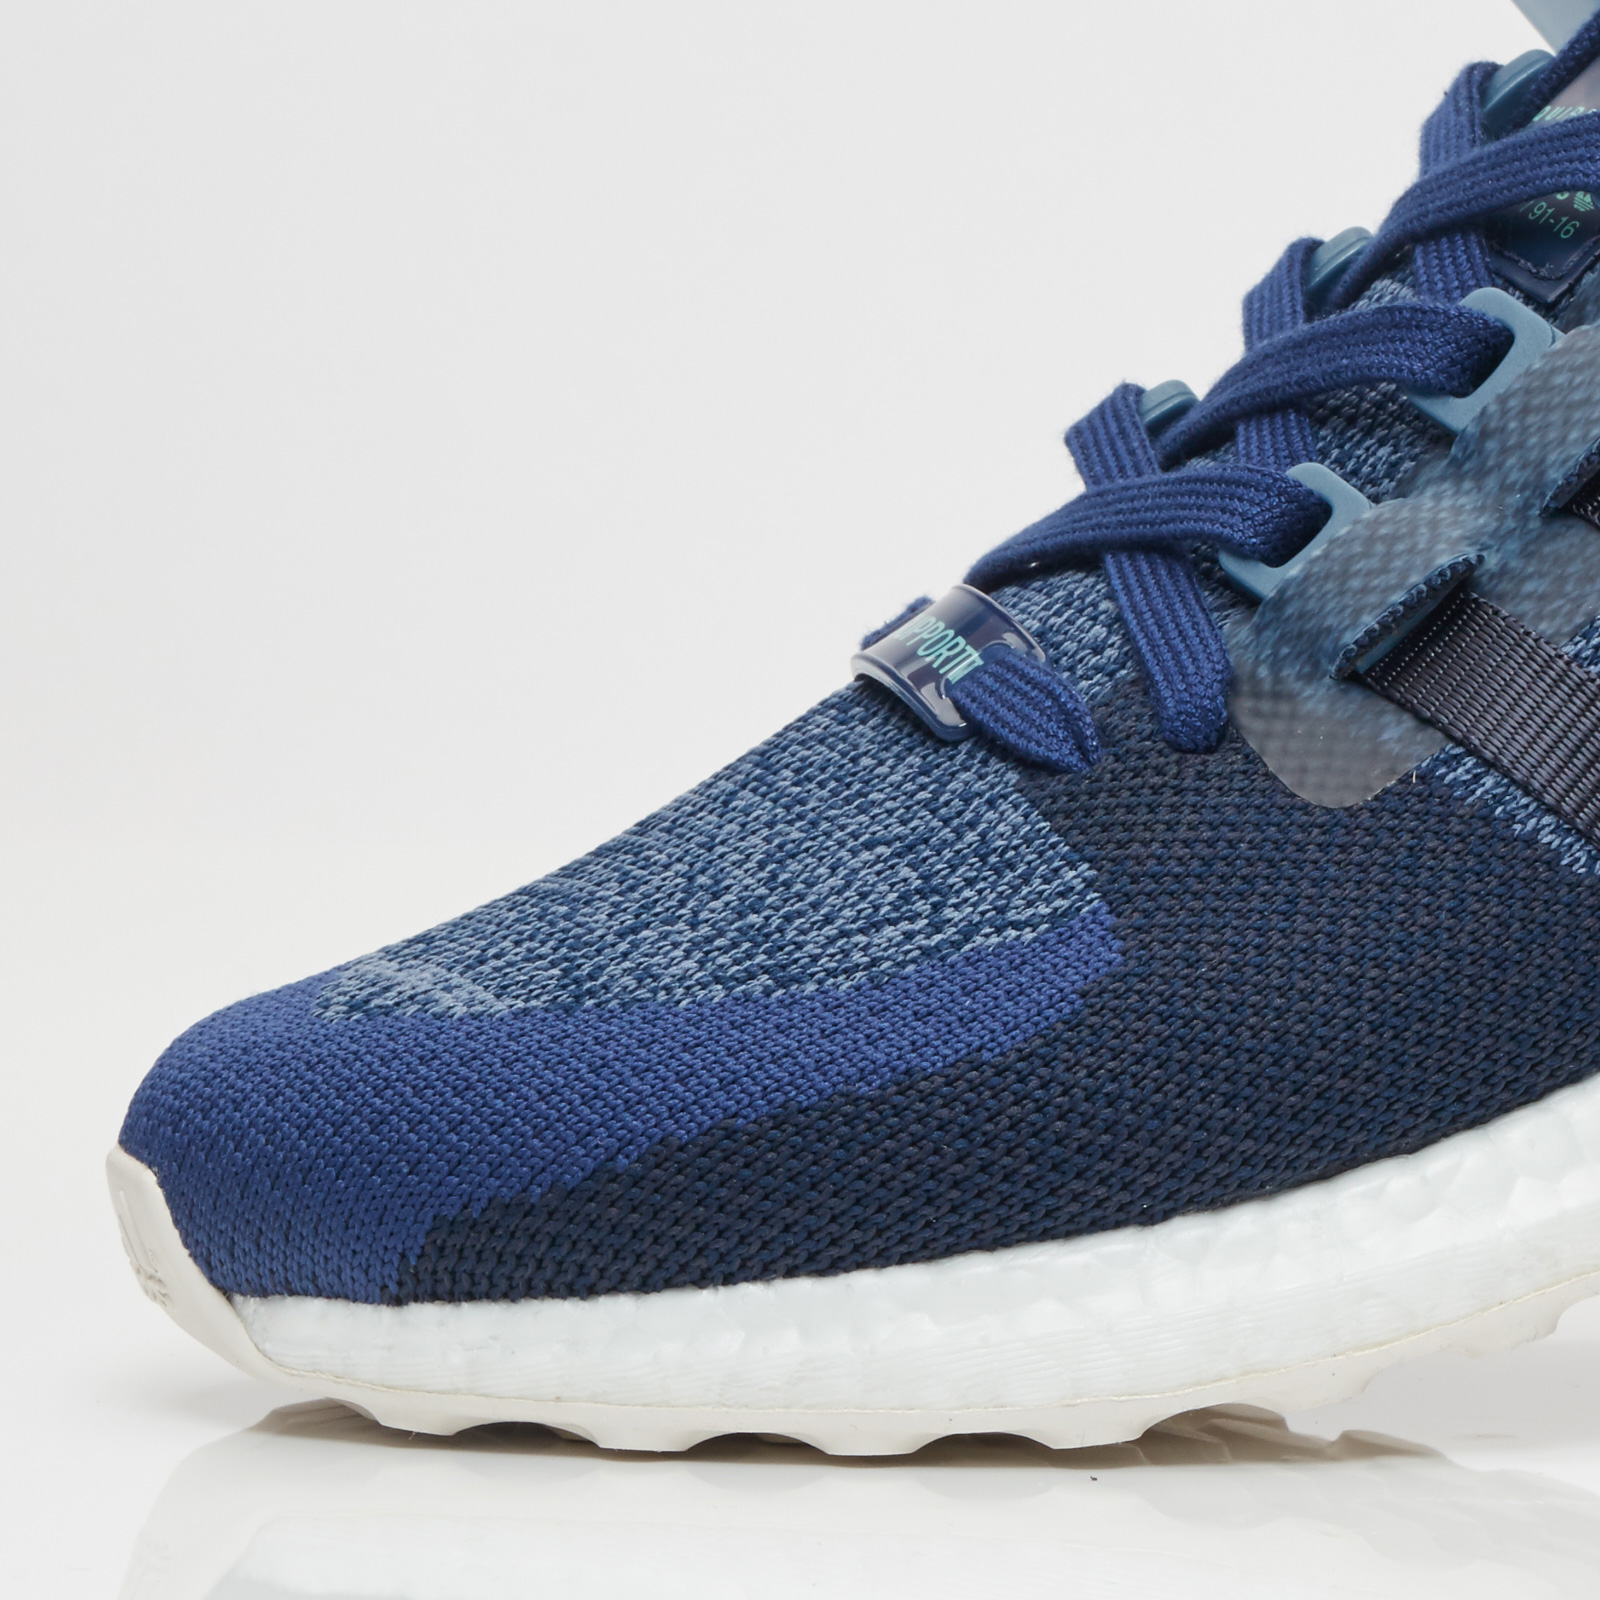 reputable site aaad0 0d875 adidas EQT Support Ultra Primeknit - Cq1895 - Sneakersnstuff ...